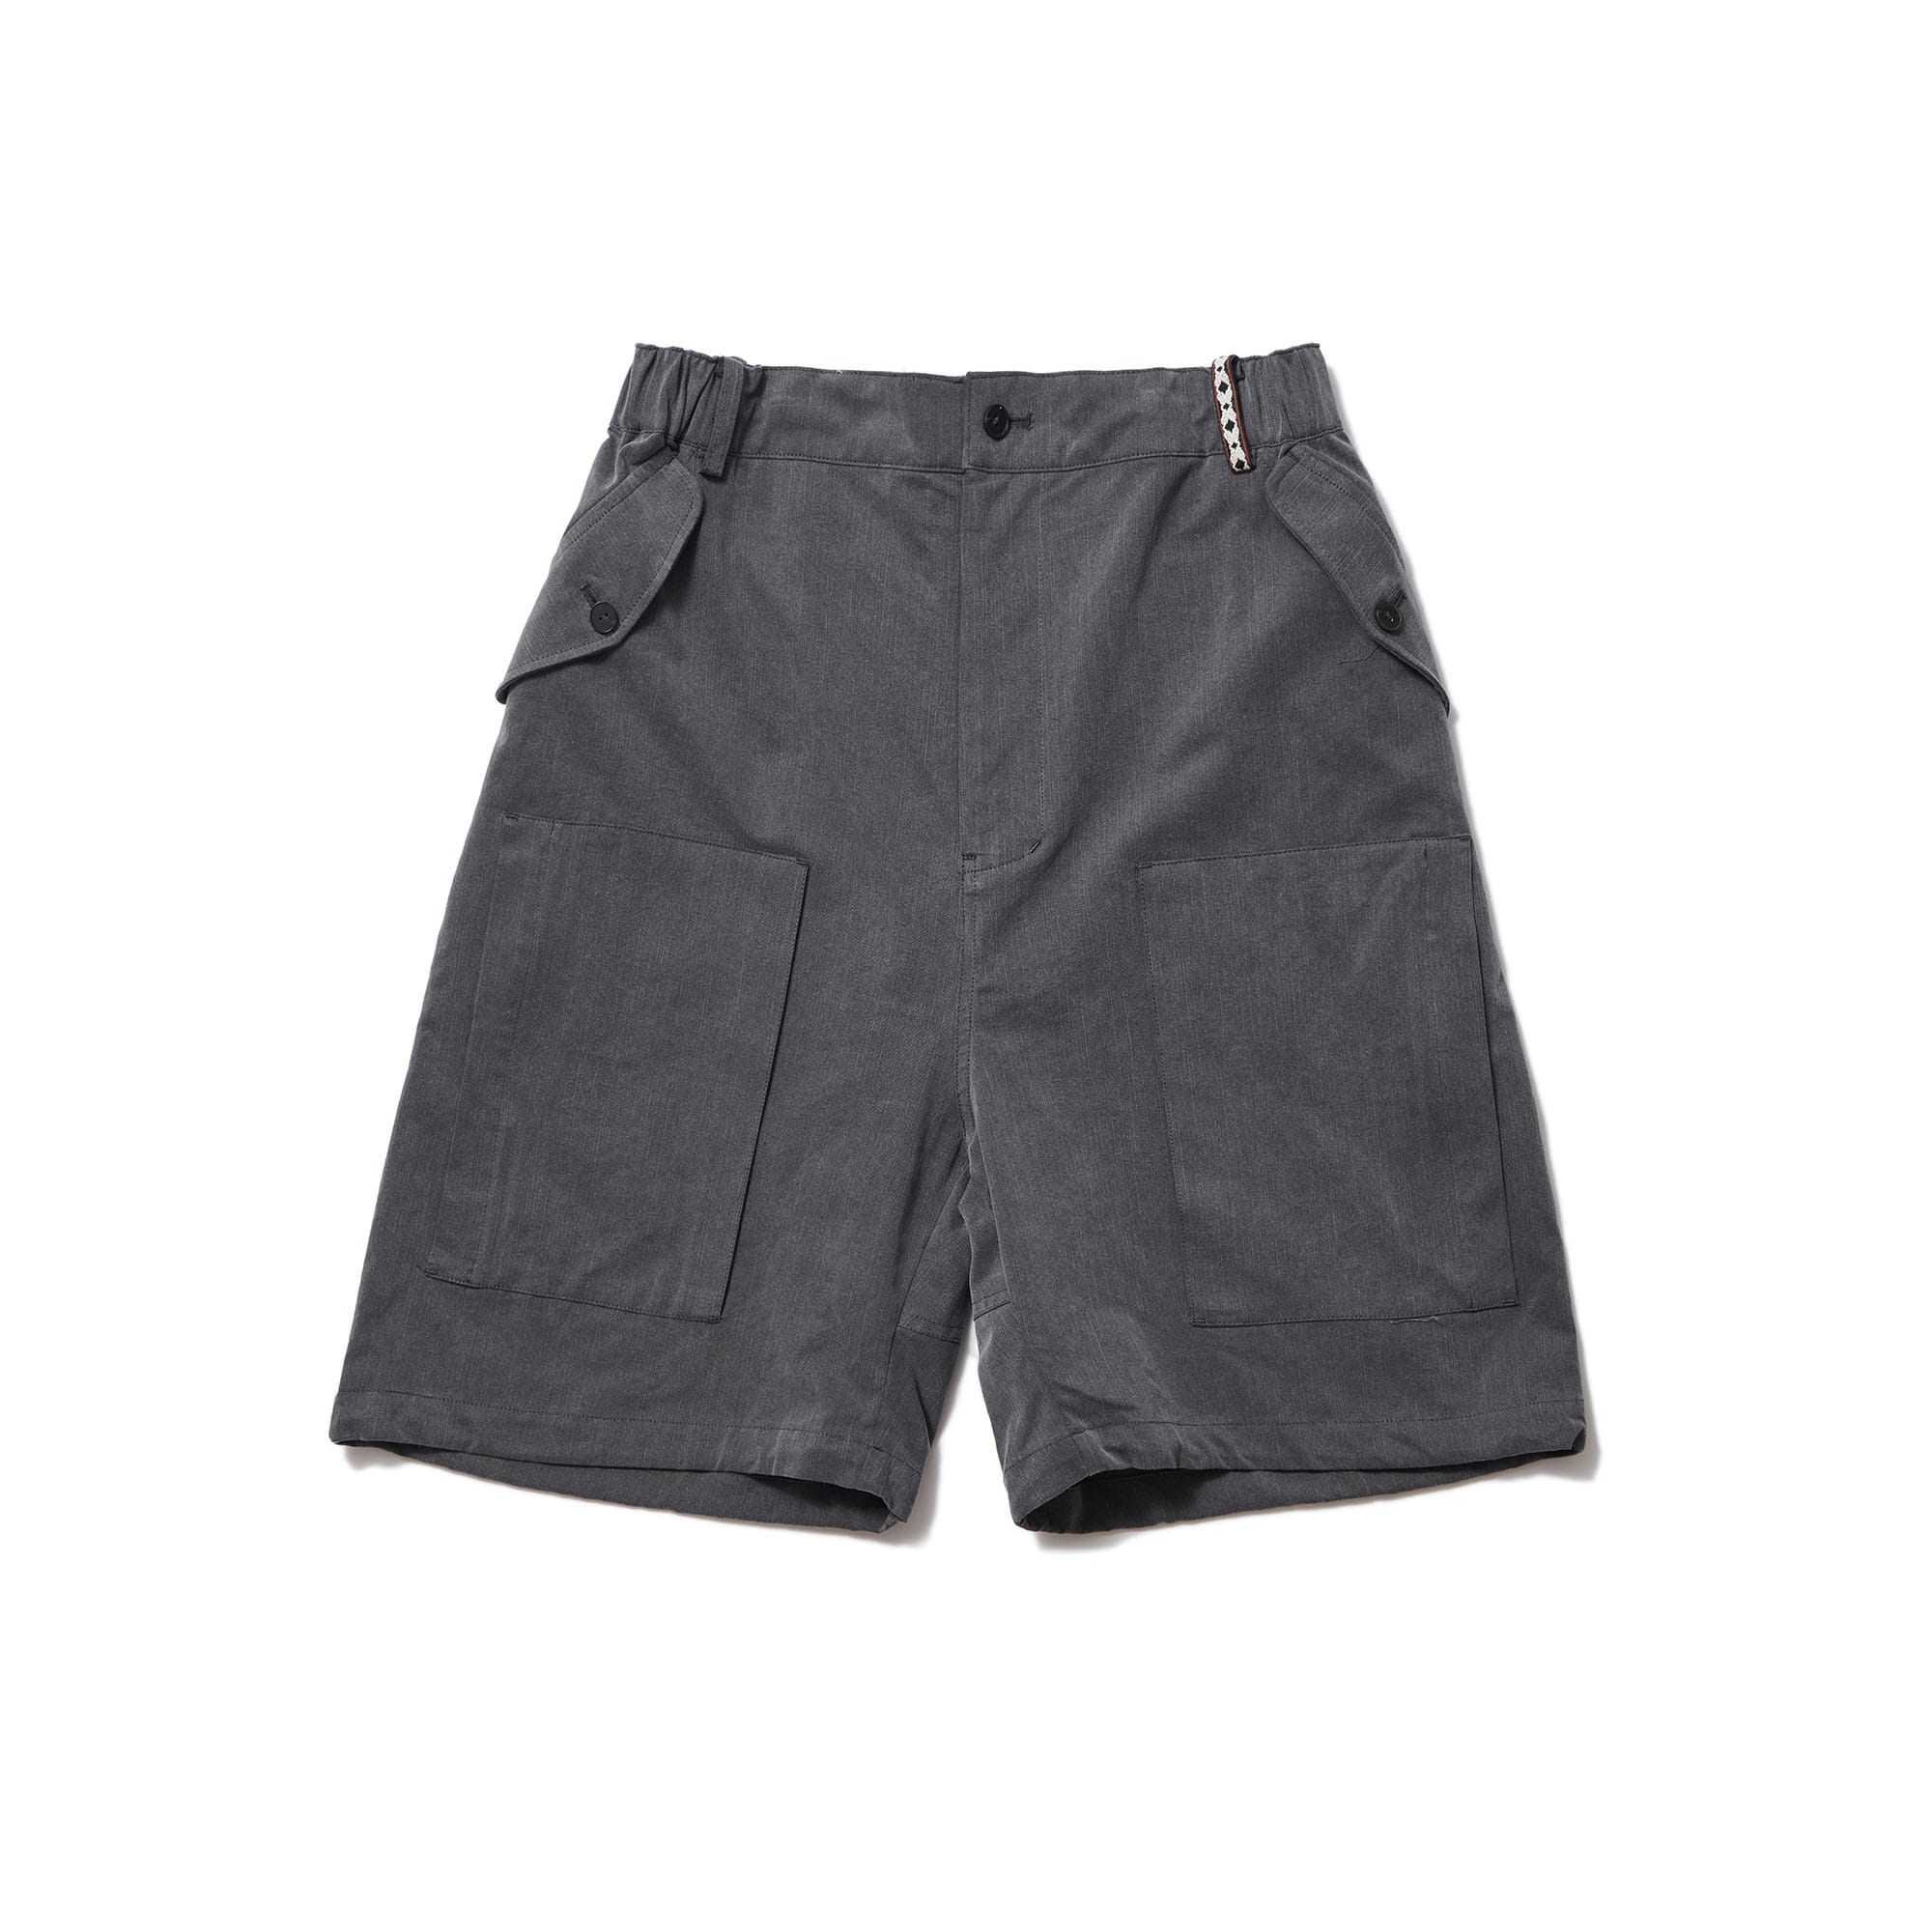 6 Pocket Chino Capris Pants Charcoal